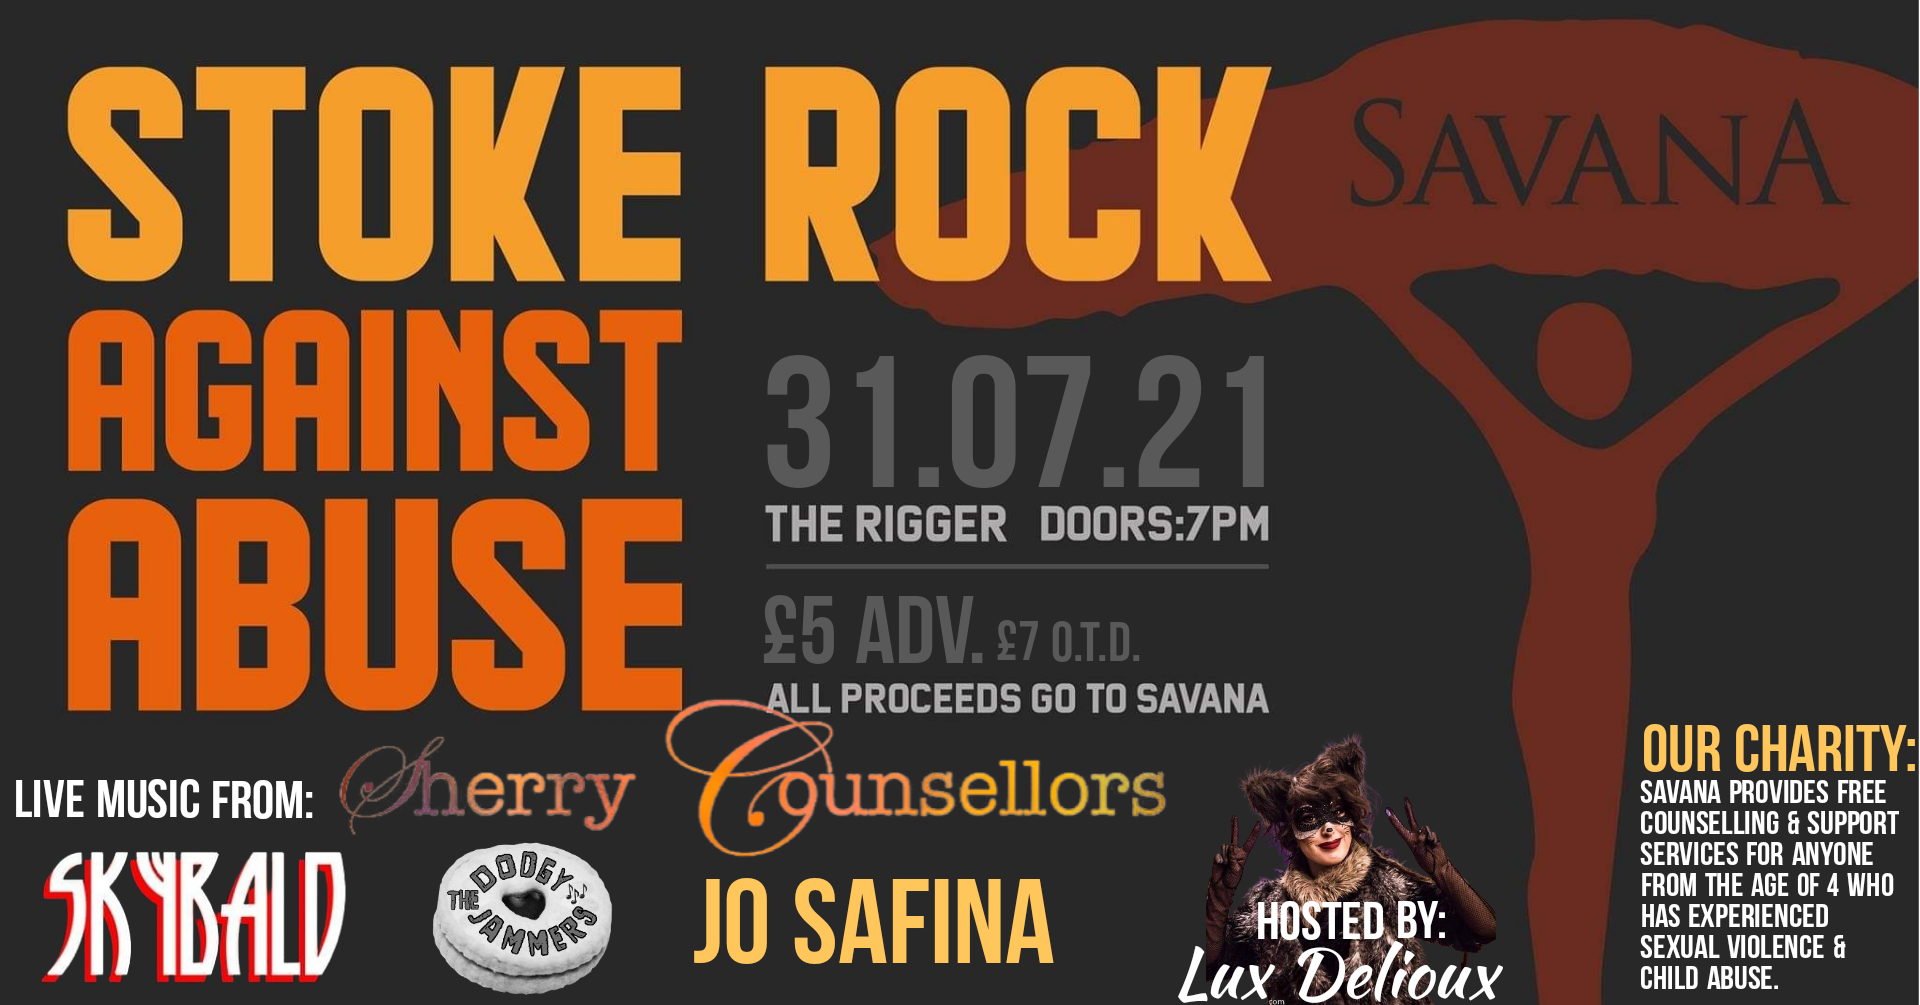 Rock Against abuse  £870